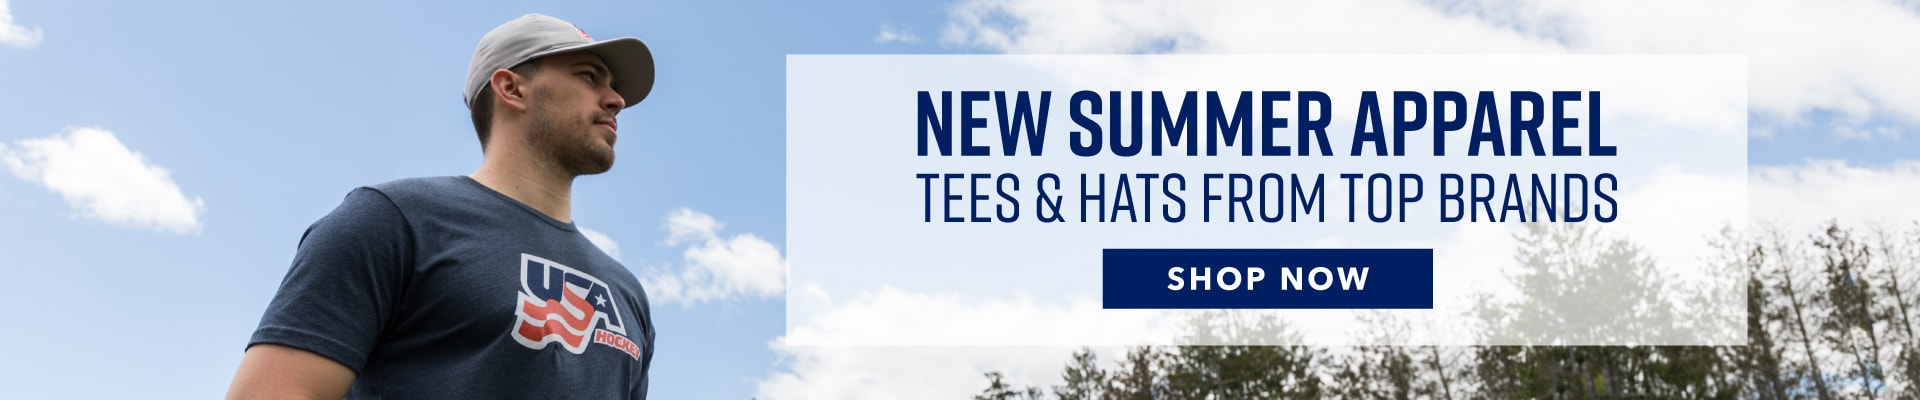 Shop New Summer Apparel